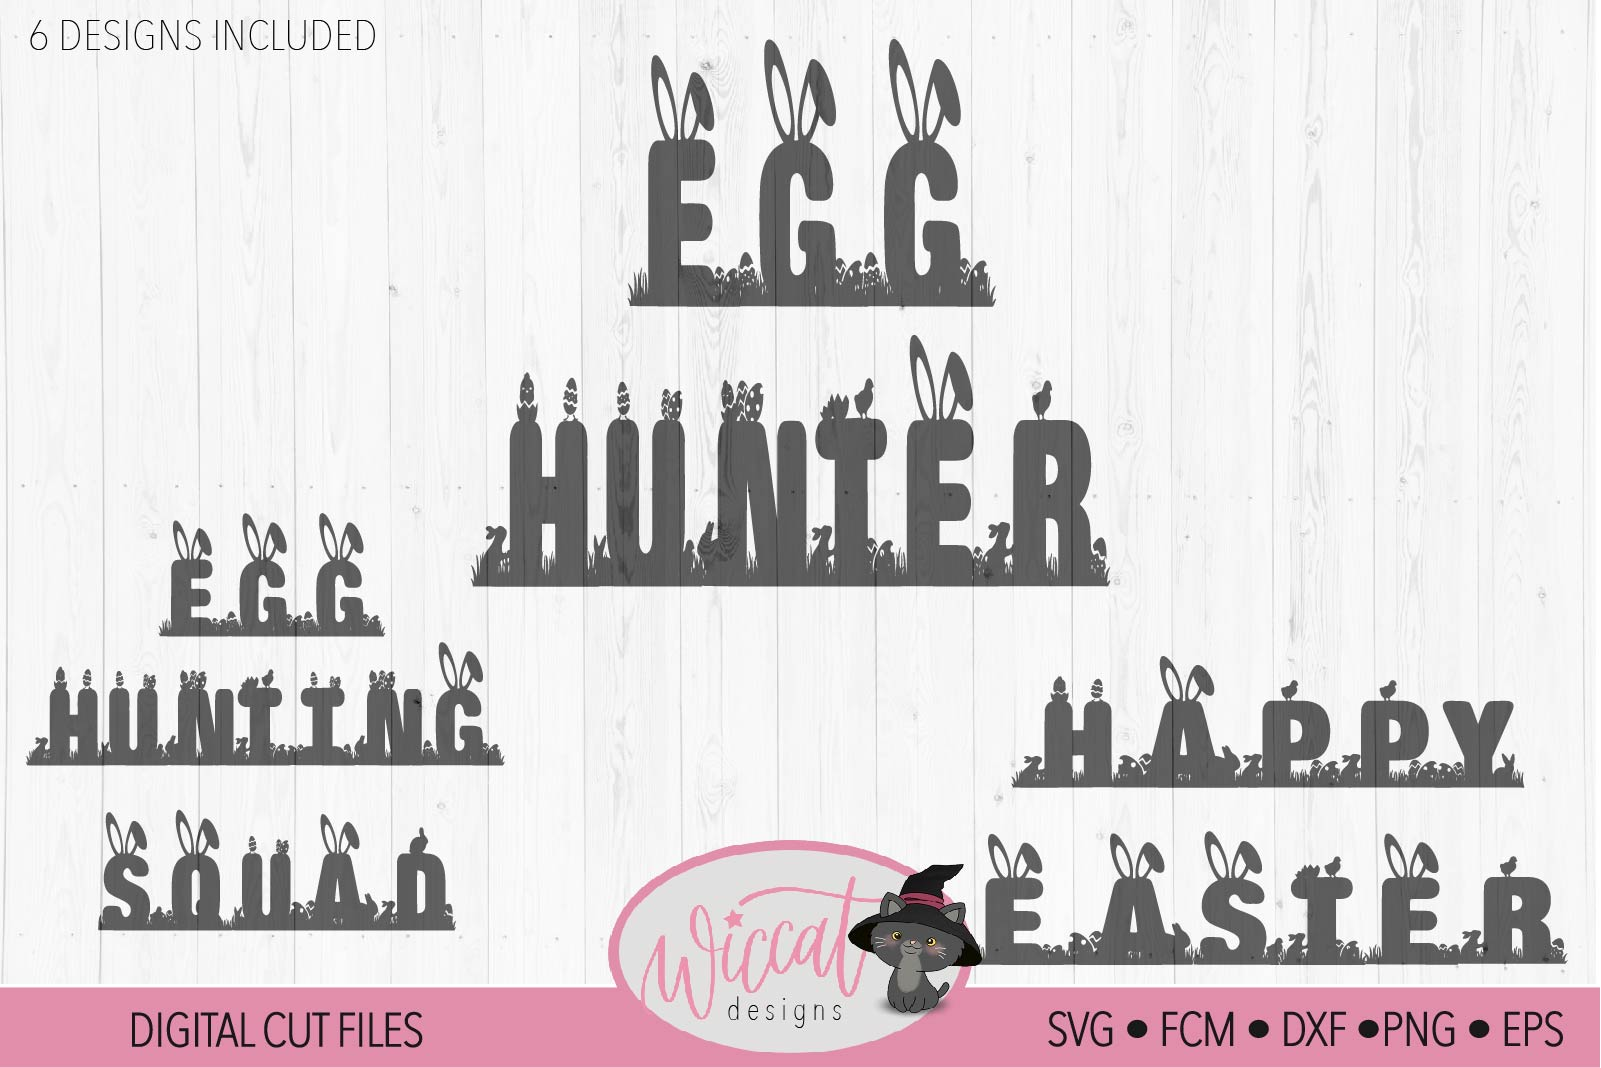 Happy Easter Quote svg, Egg hunter svg, Hunting squad example image 5